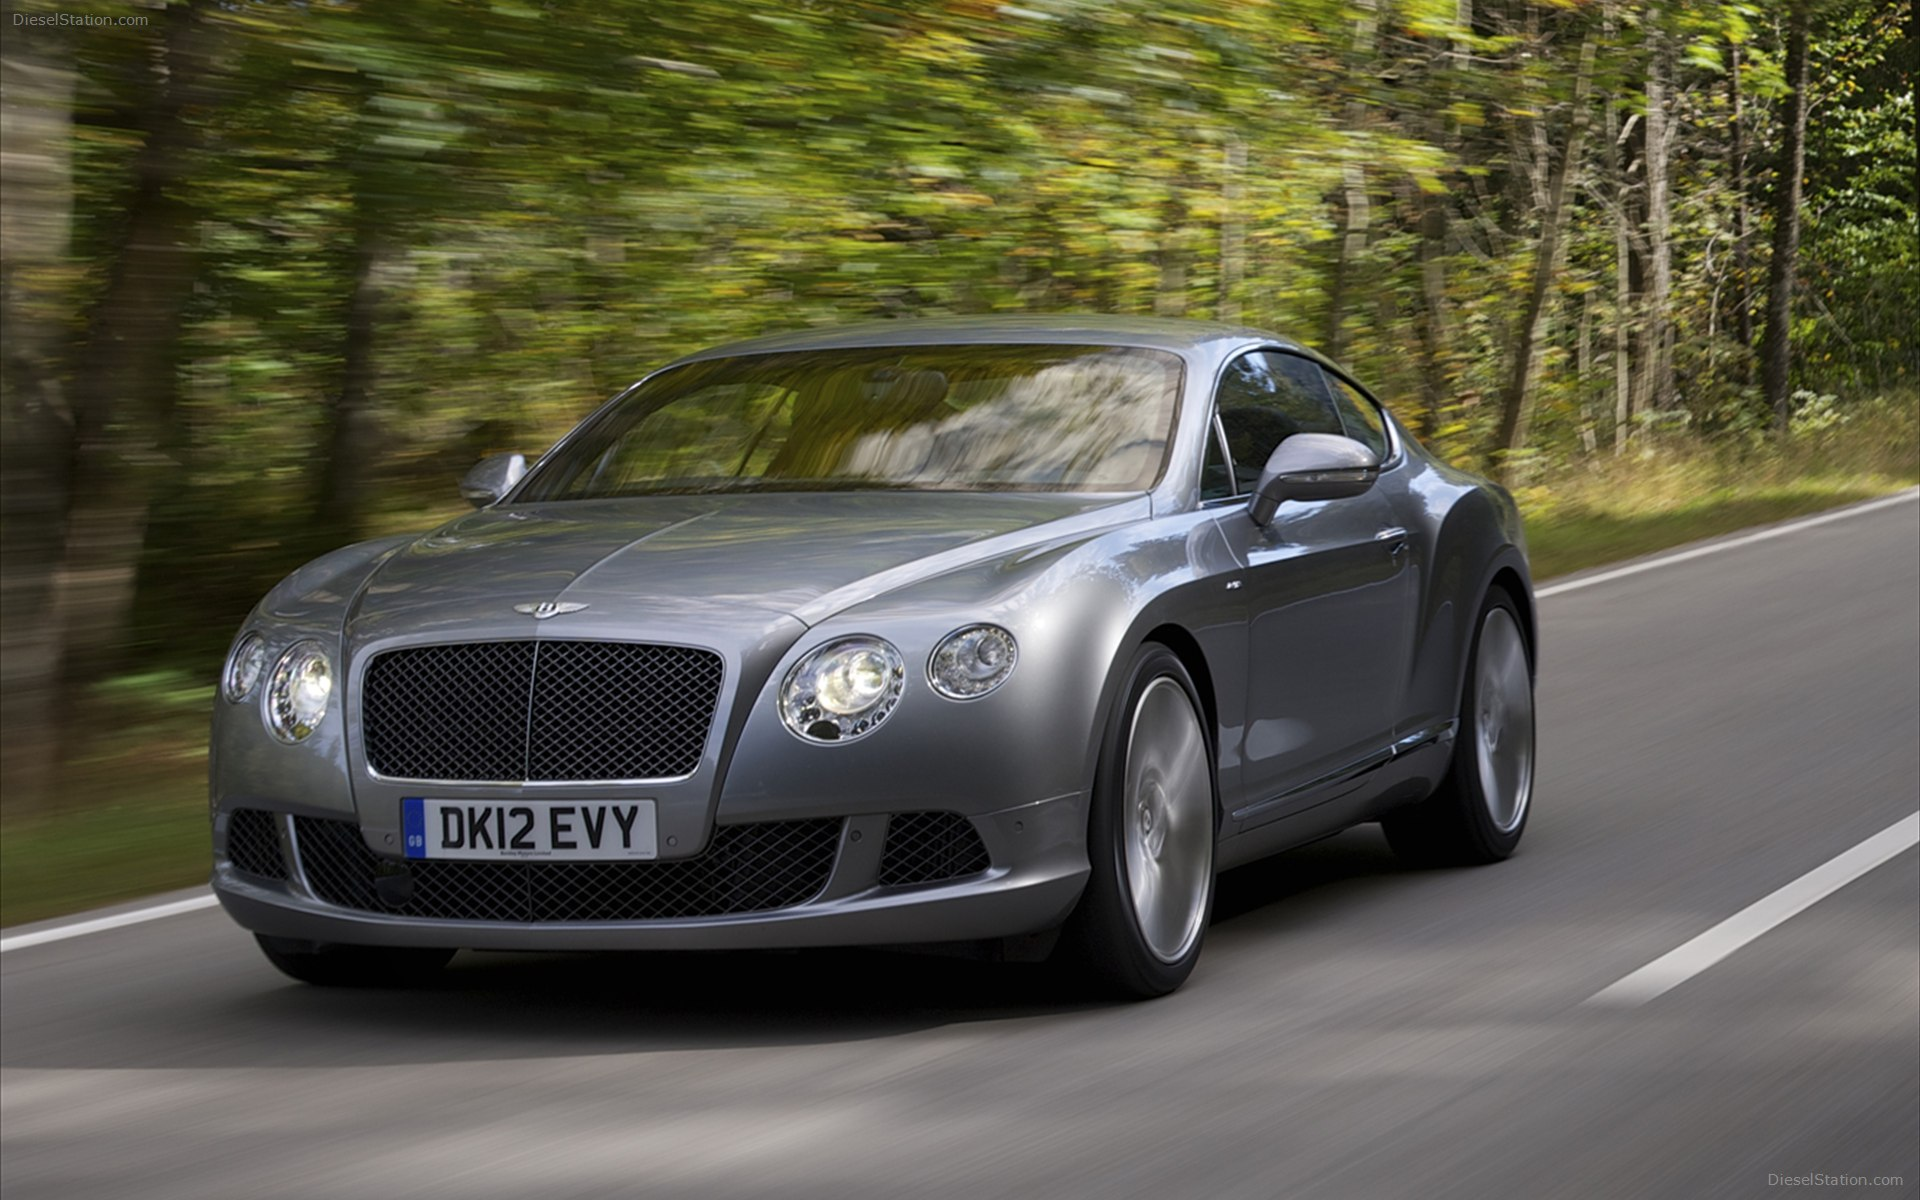 2013 Bentley Continental Gt Speed #7